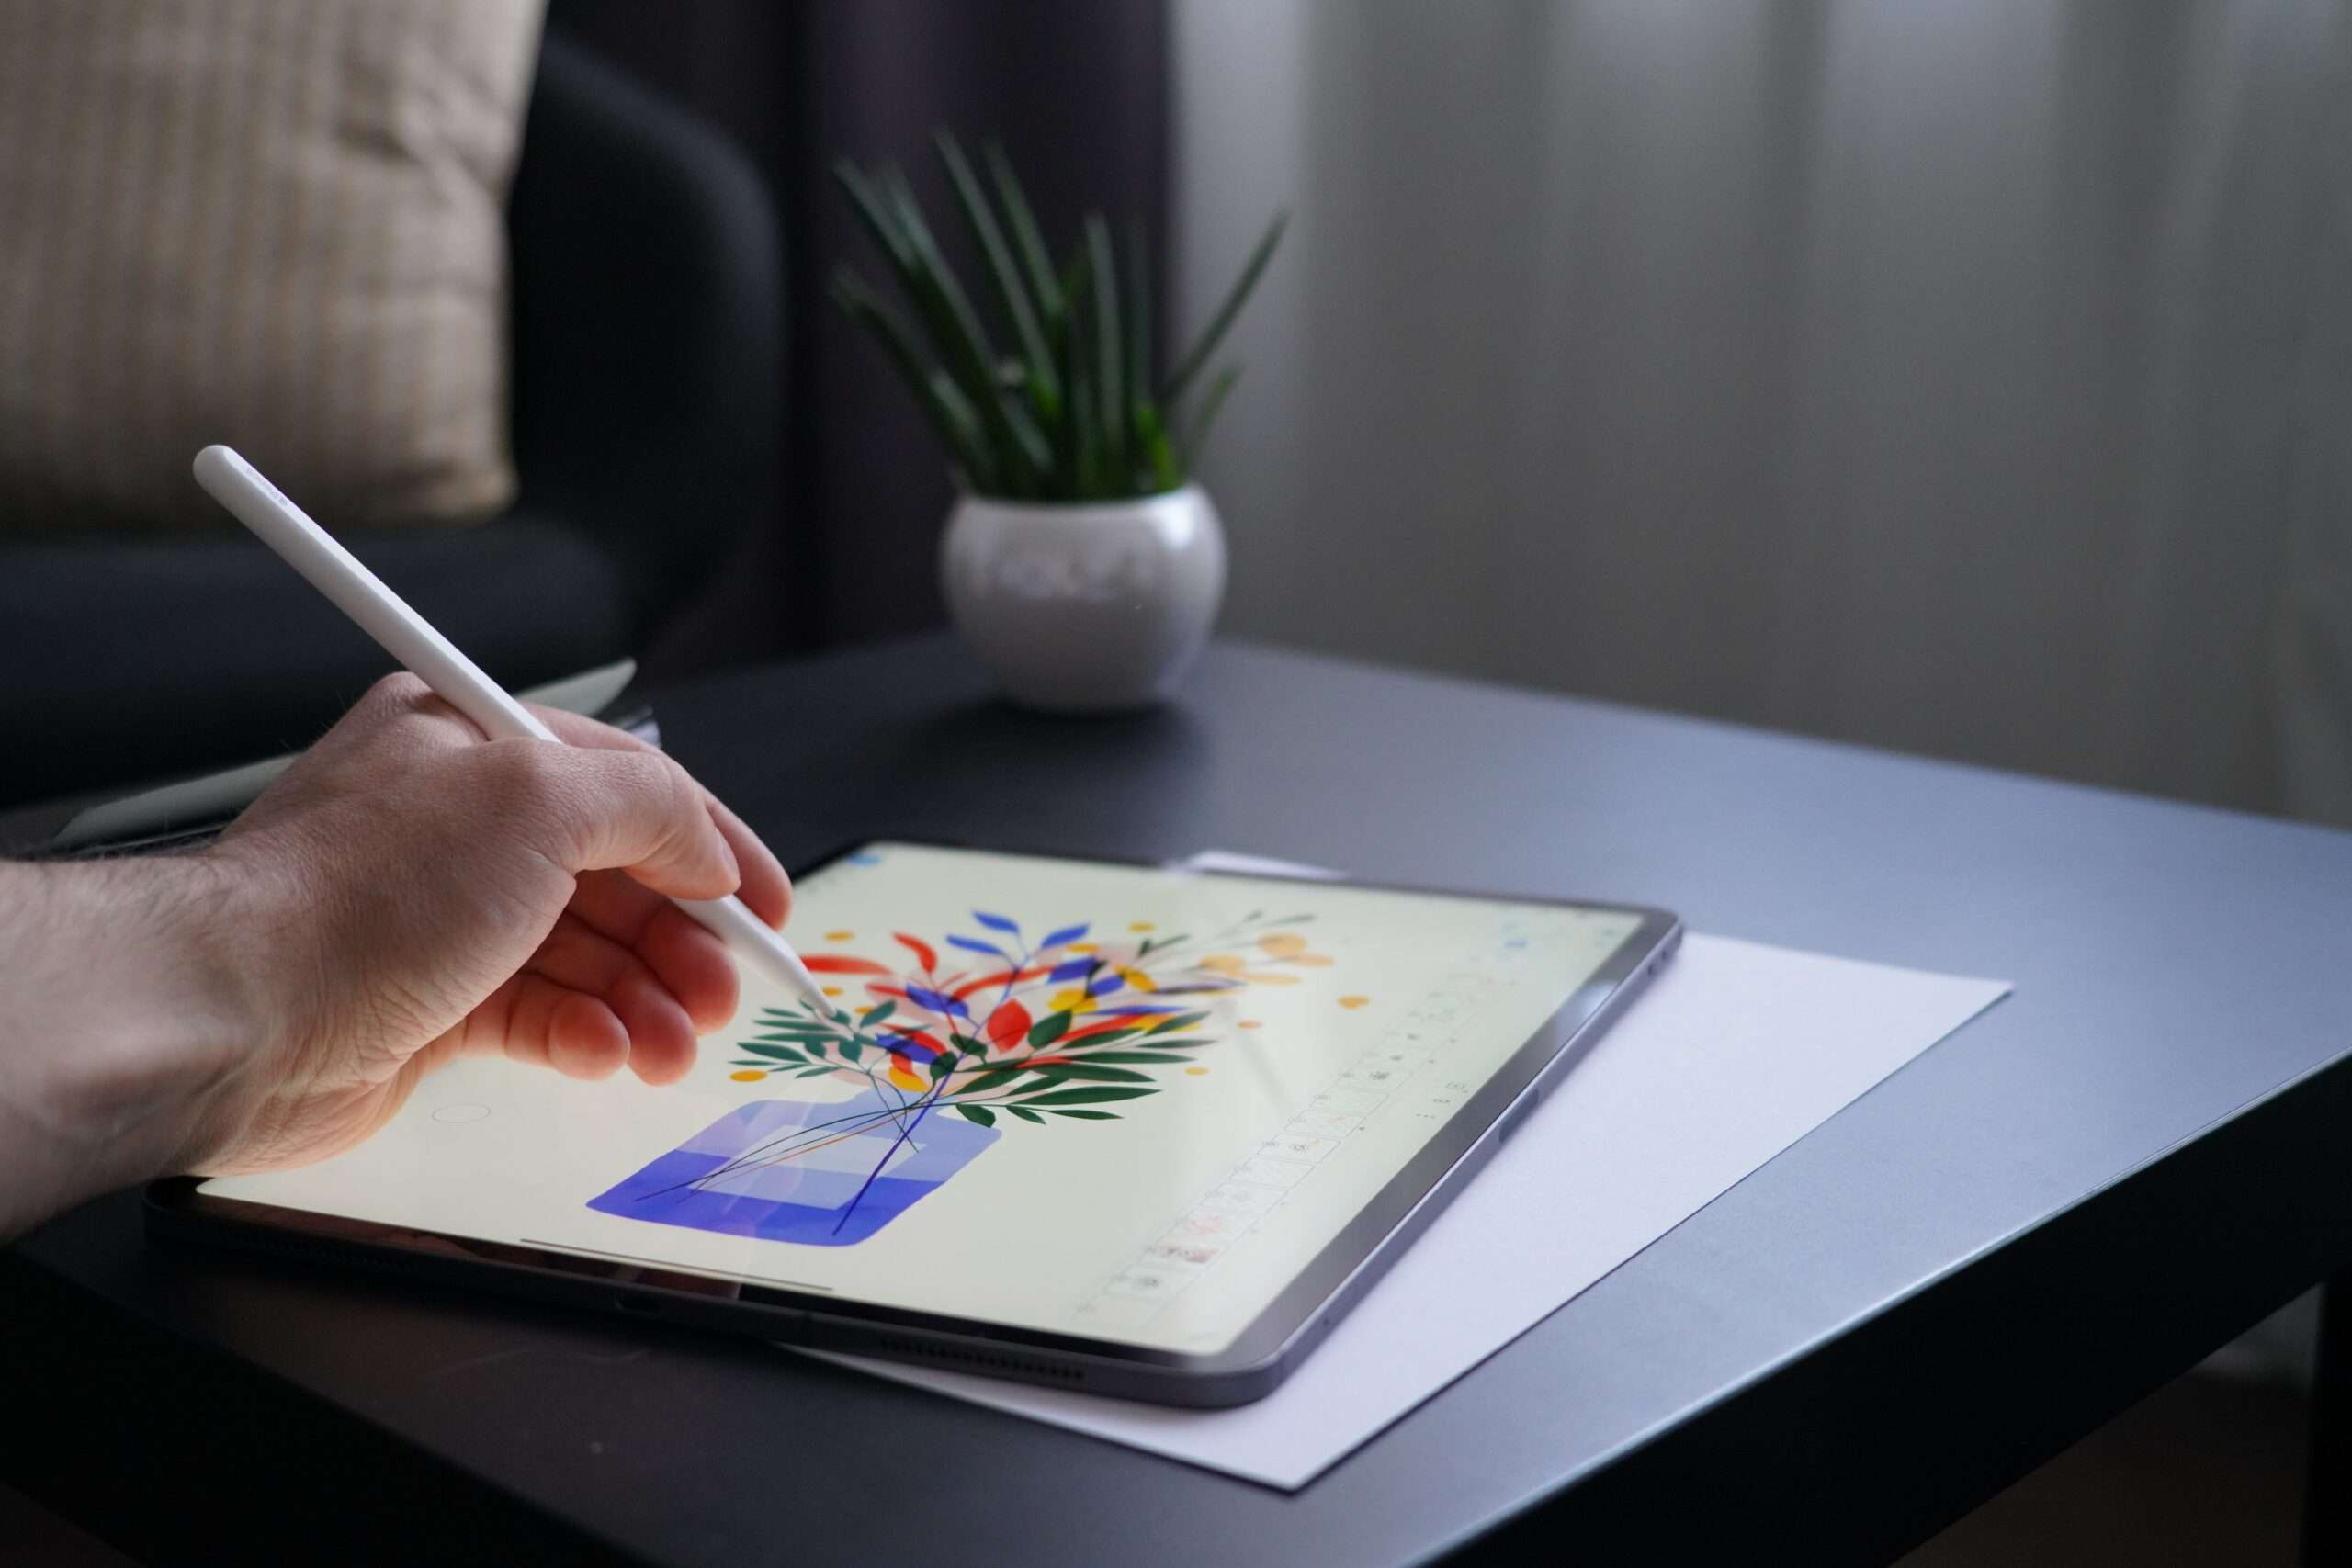 Apps Similar To Procreate